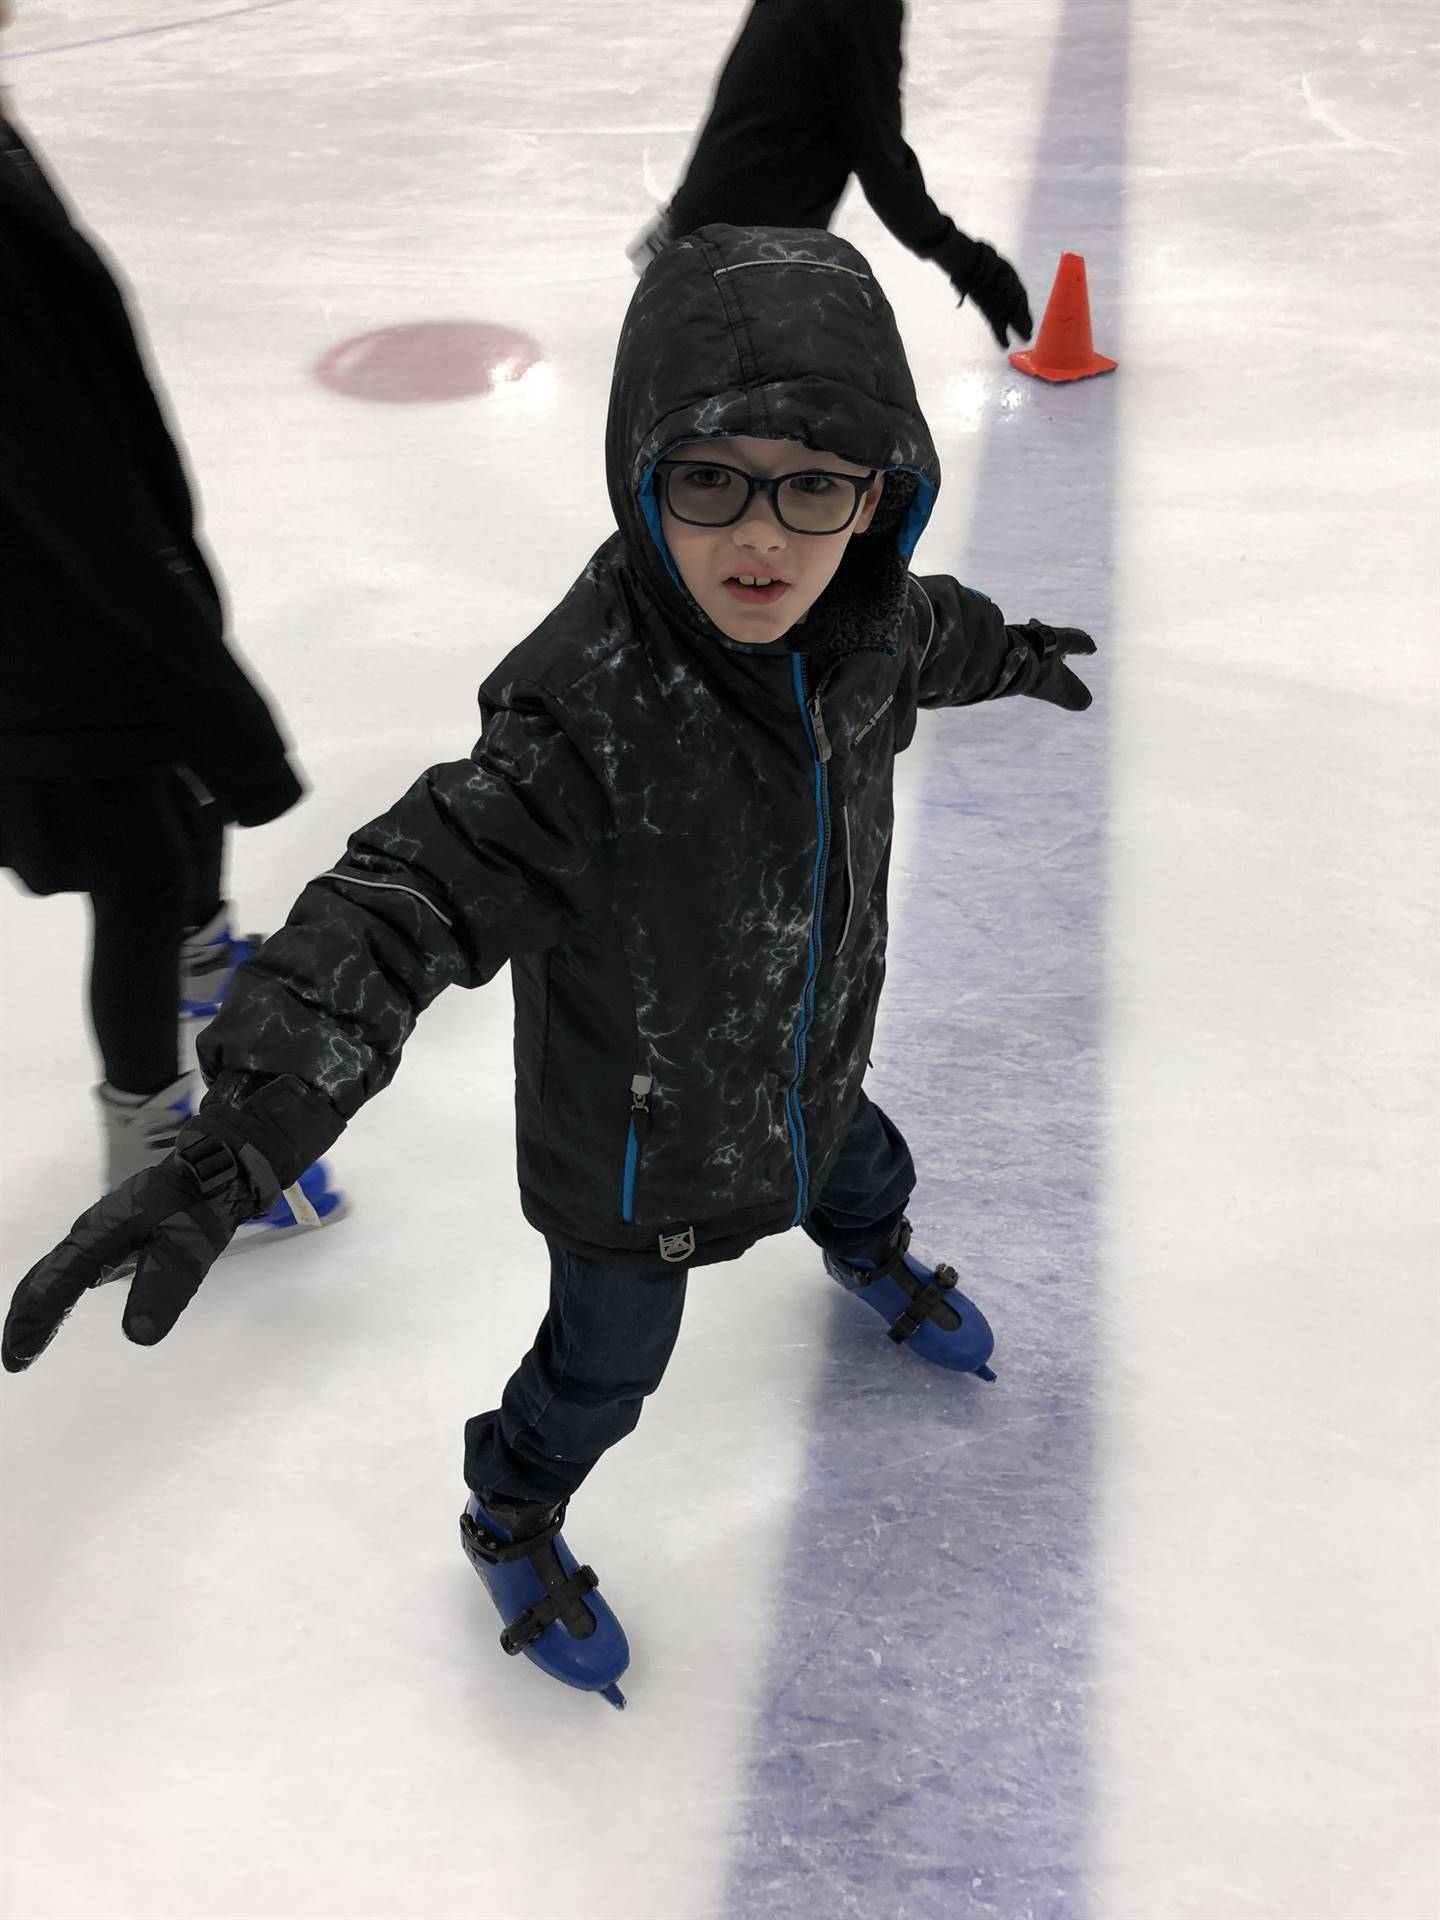 Josiah Ice Skating